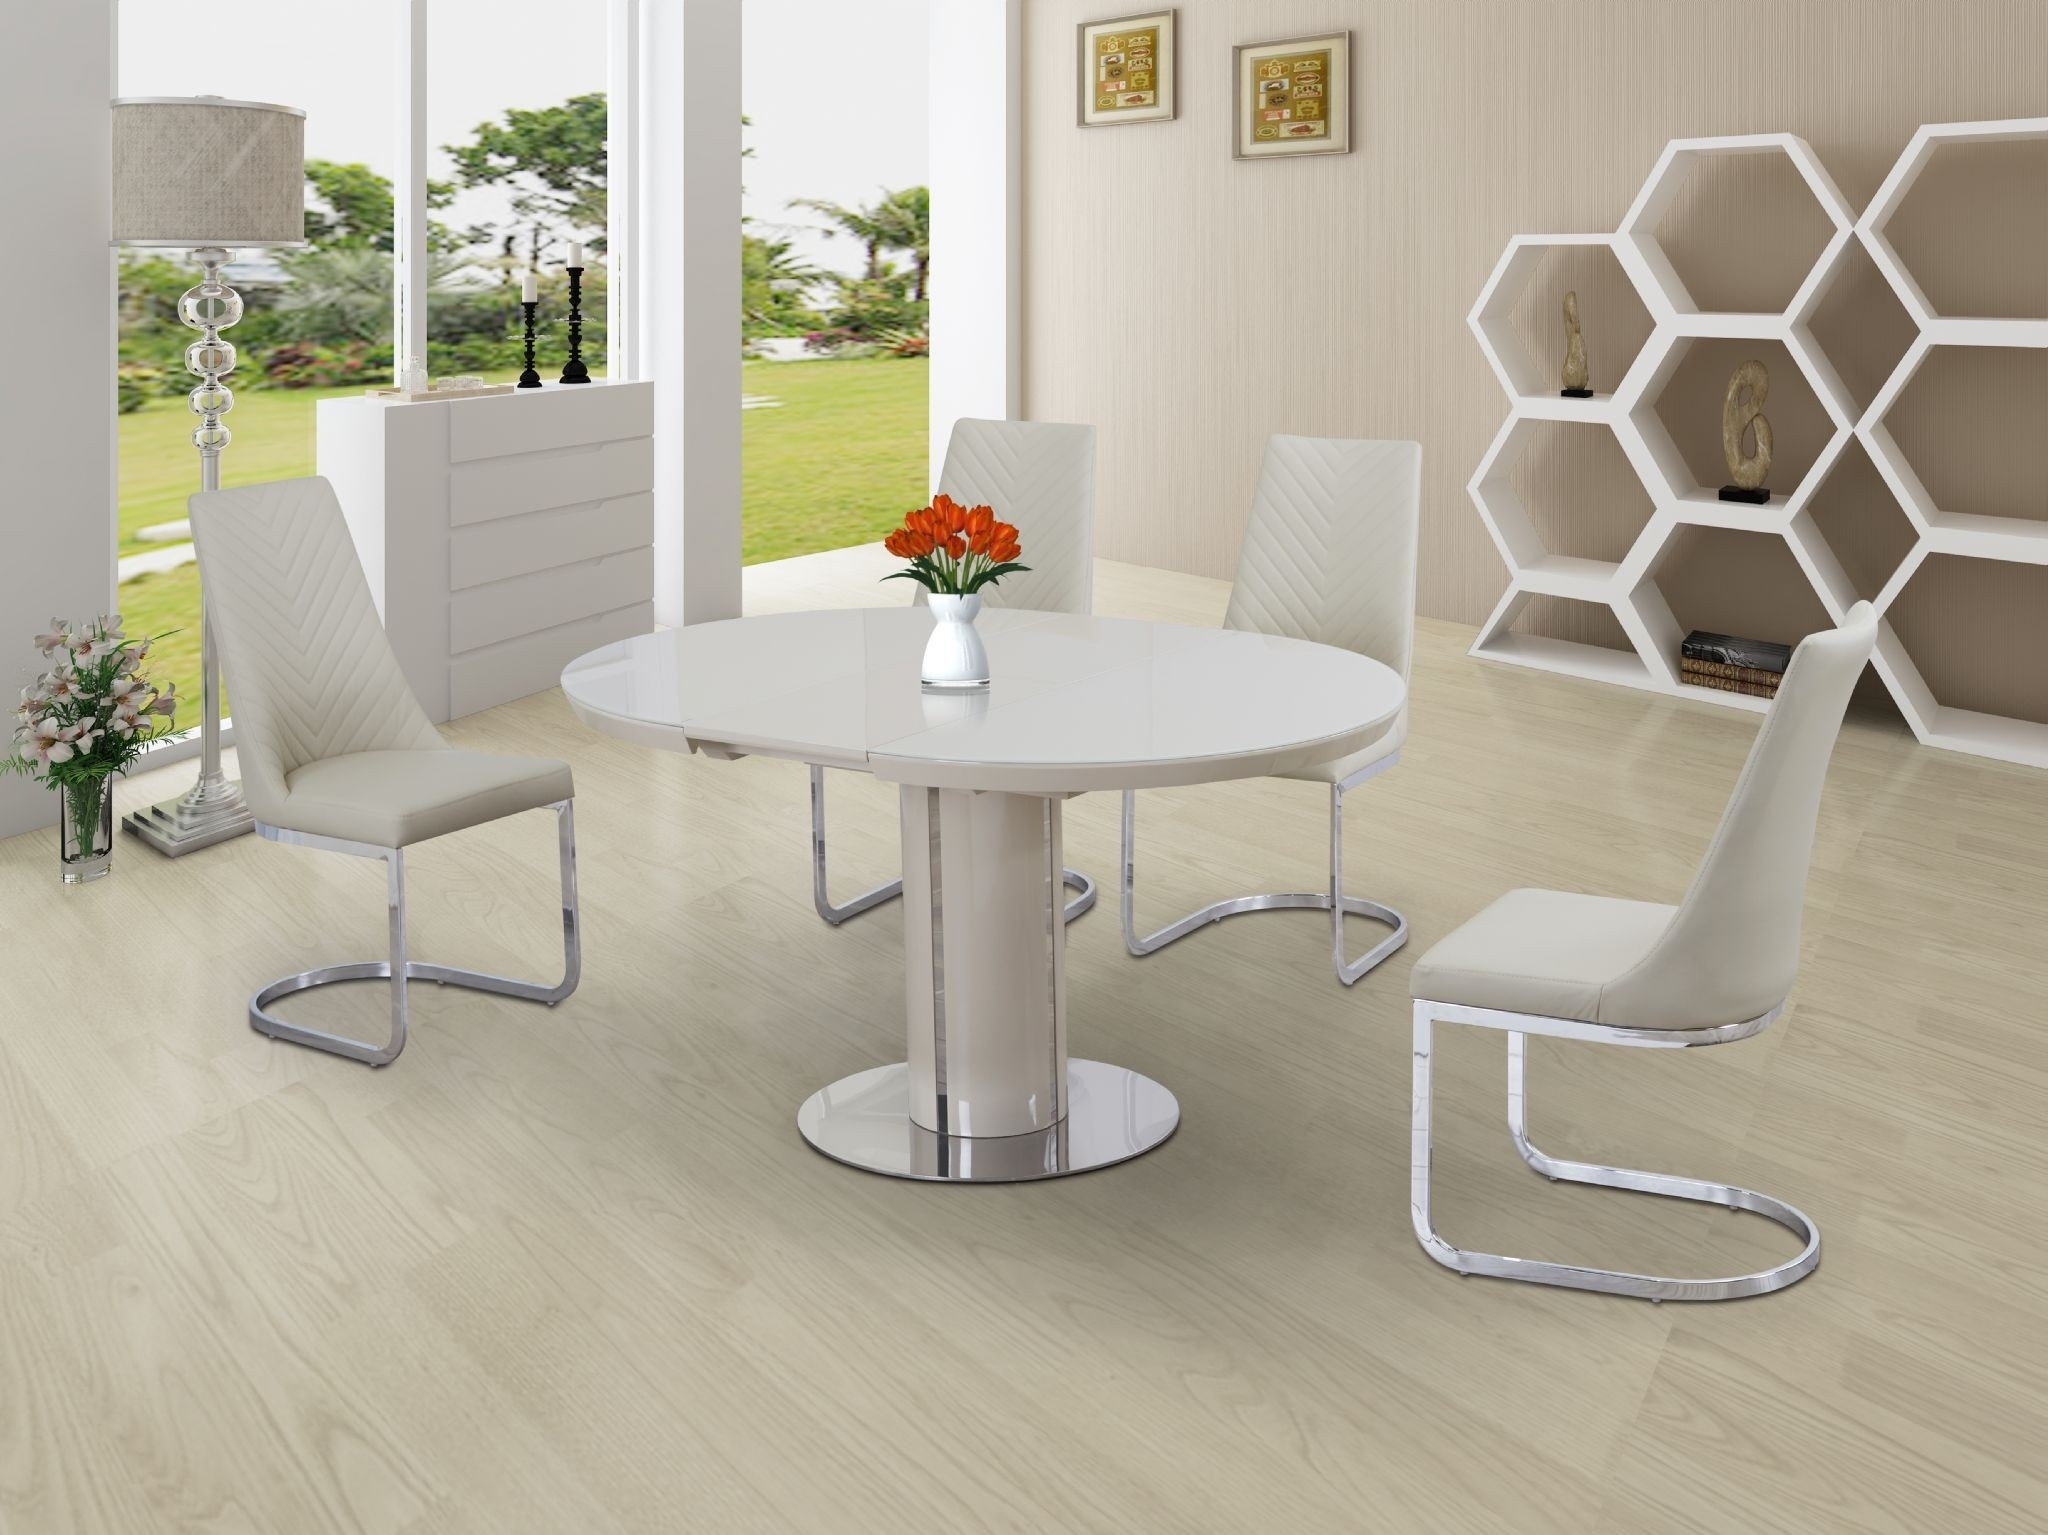 Buy Annular Cream High Gloss Extending Dining Table Pertaining To Most Recent High Gloss Dining Tables Sets (Gallery 12 of 25)